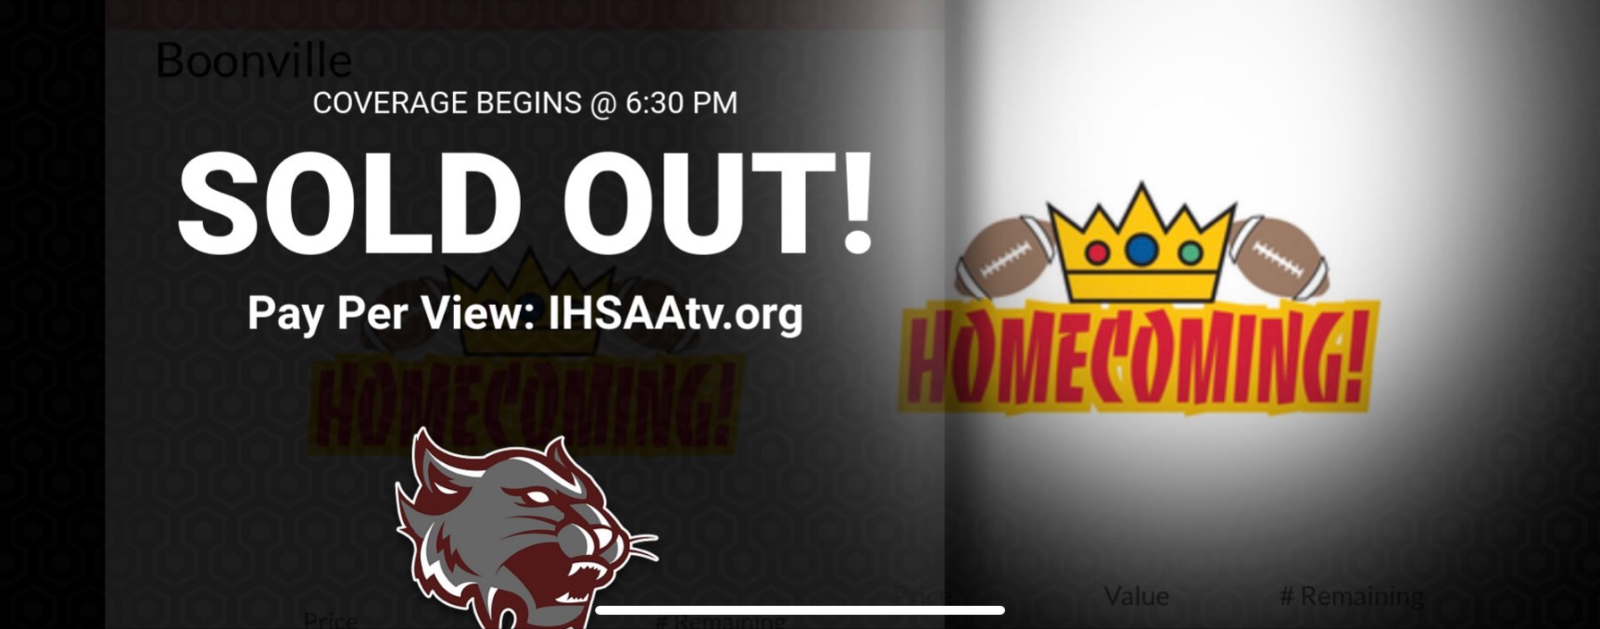 Homecoming Tickets are Sold Out!